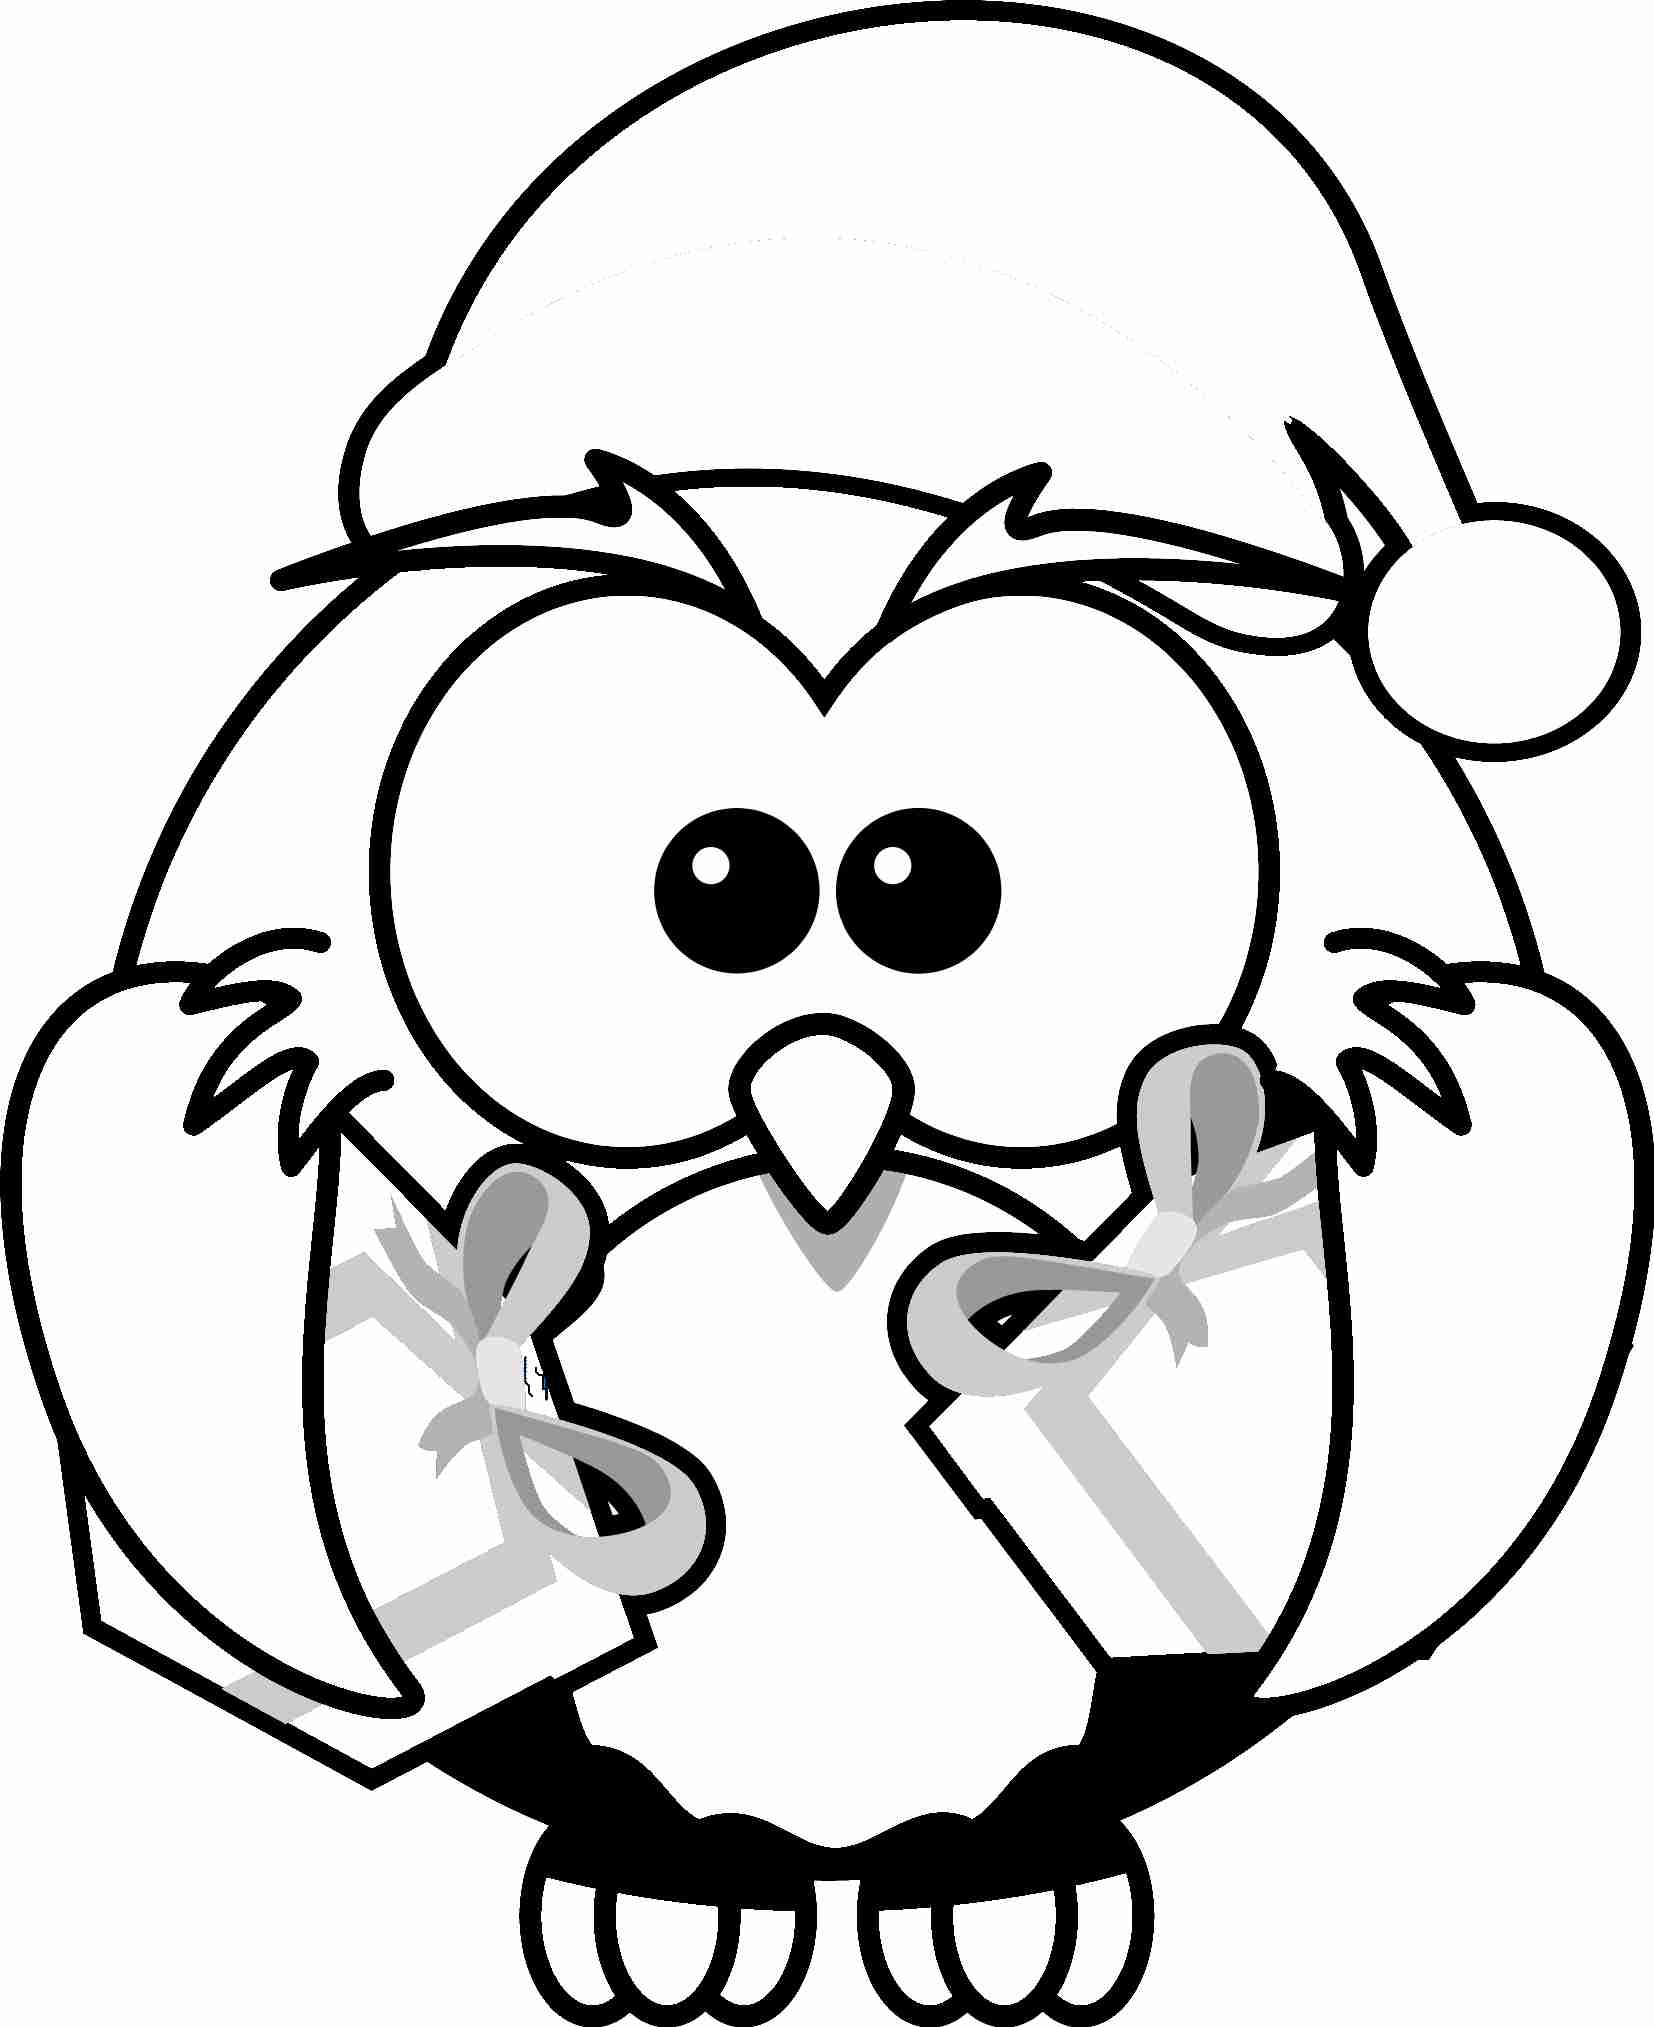 Christmas Coloring Book Online With Free Father Pictures To Colour Download Clip Art